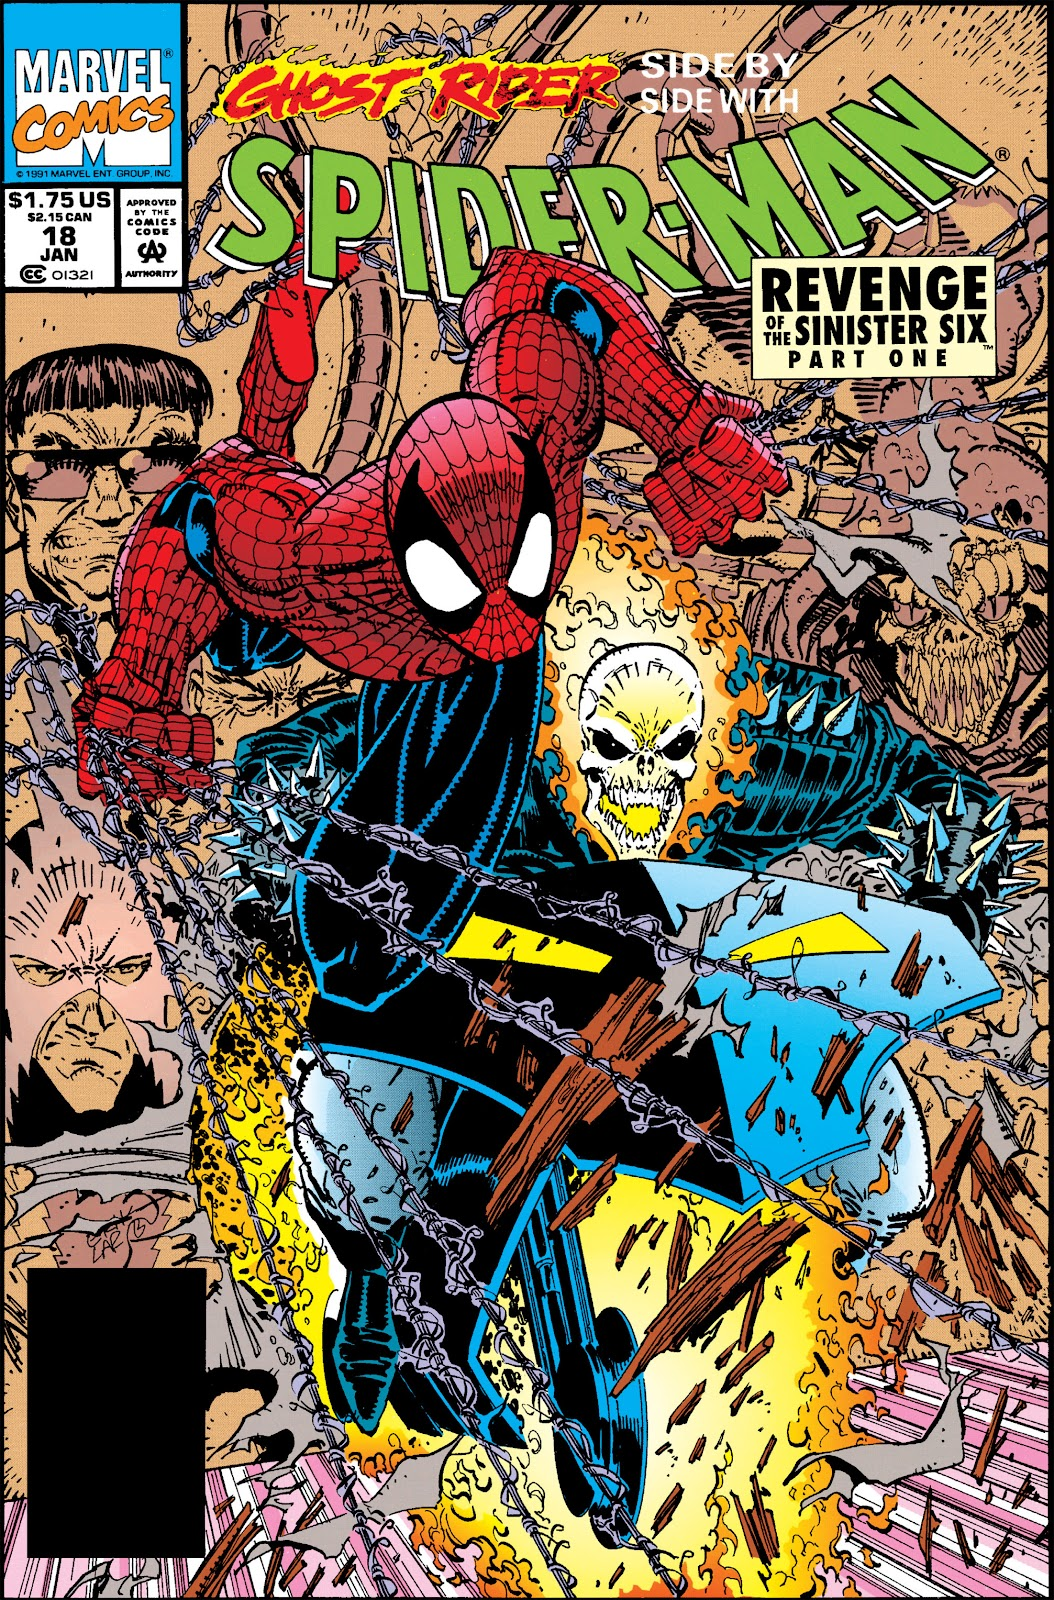 spider man 1990 issue 18 revenge of sinister six page 1